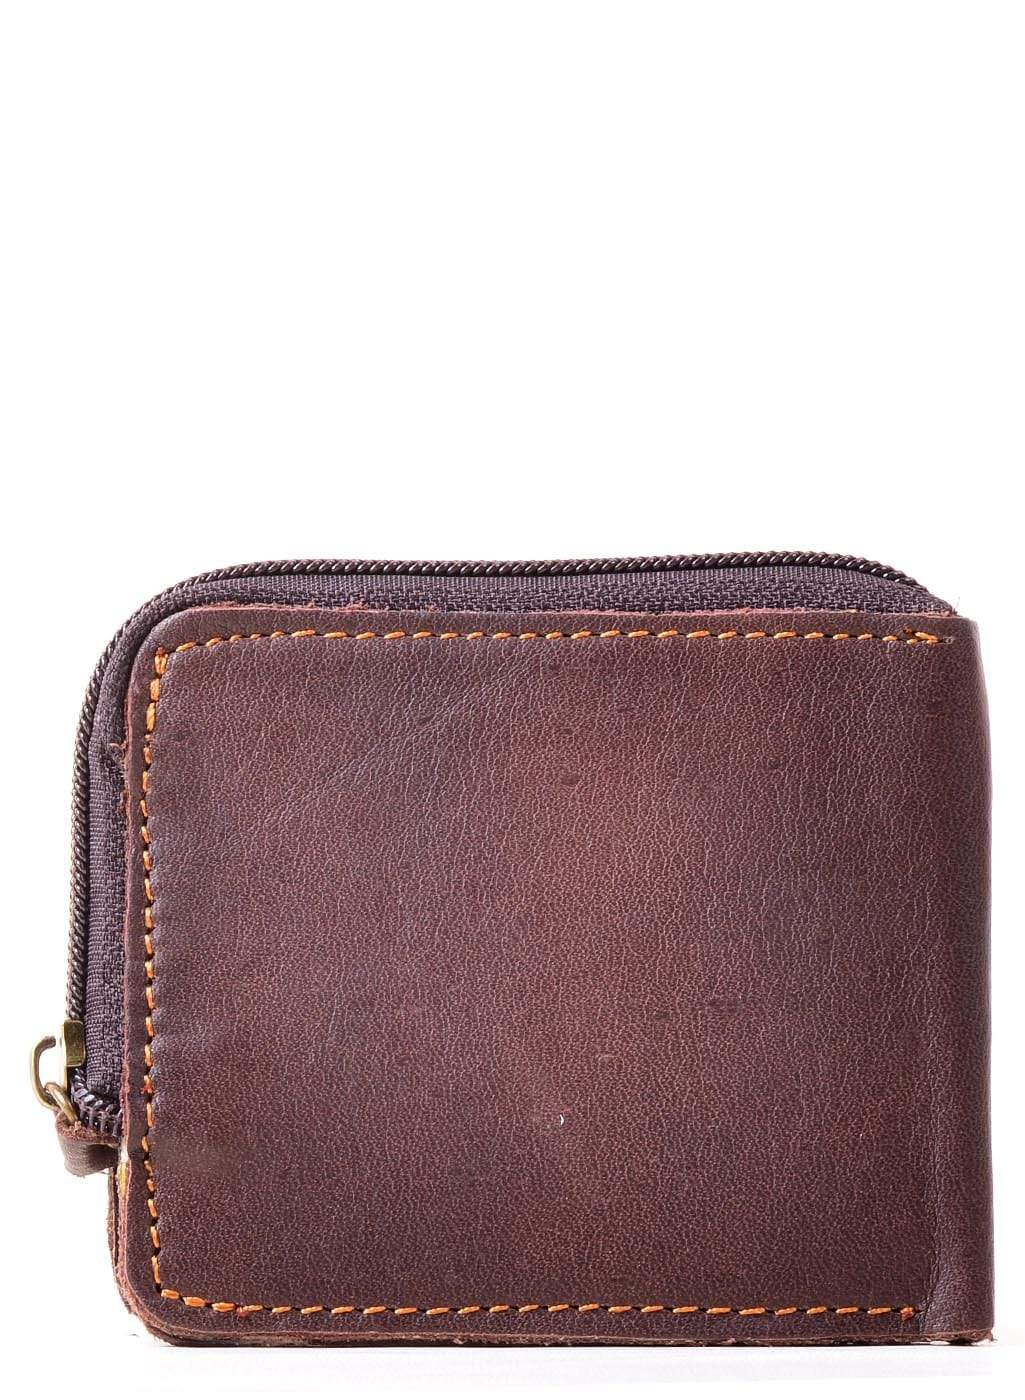 EthniCache Wallet Voguish Handmade Pure Leather Wallet